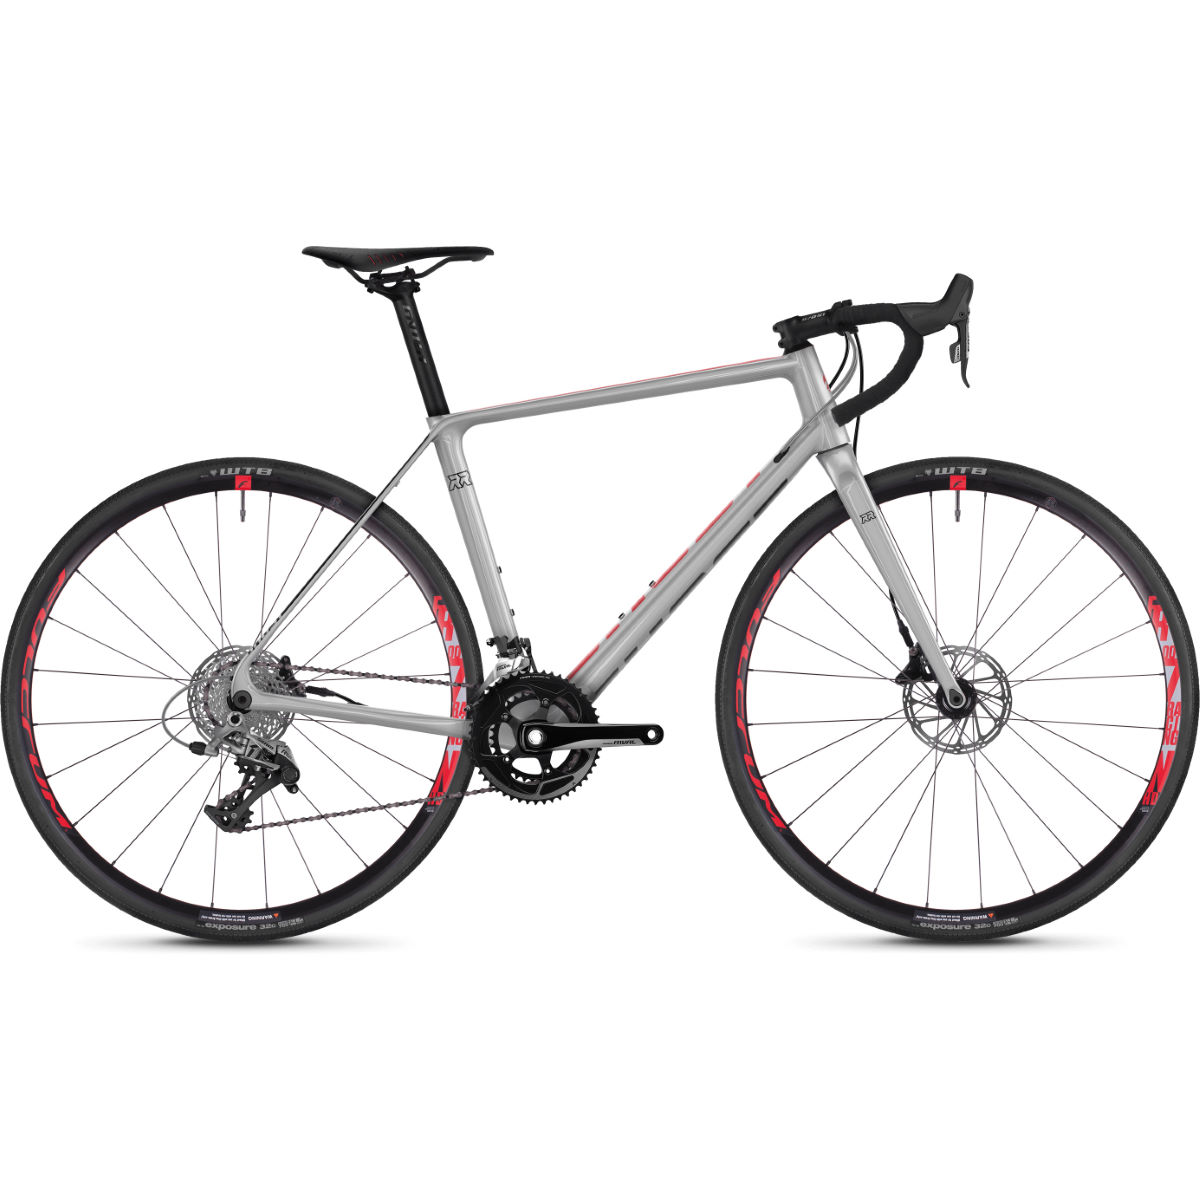 Ghost Road Rage 4.8 (2018) Adventure Road Bike - Bicicletas de carretera